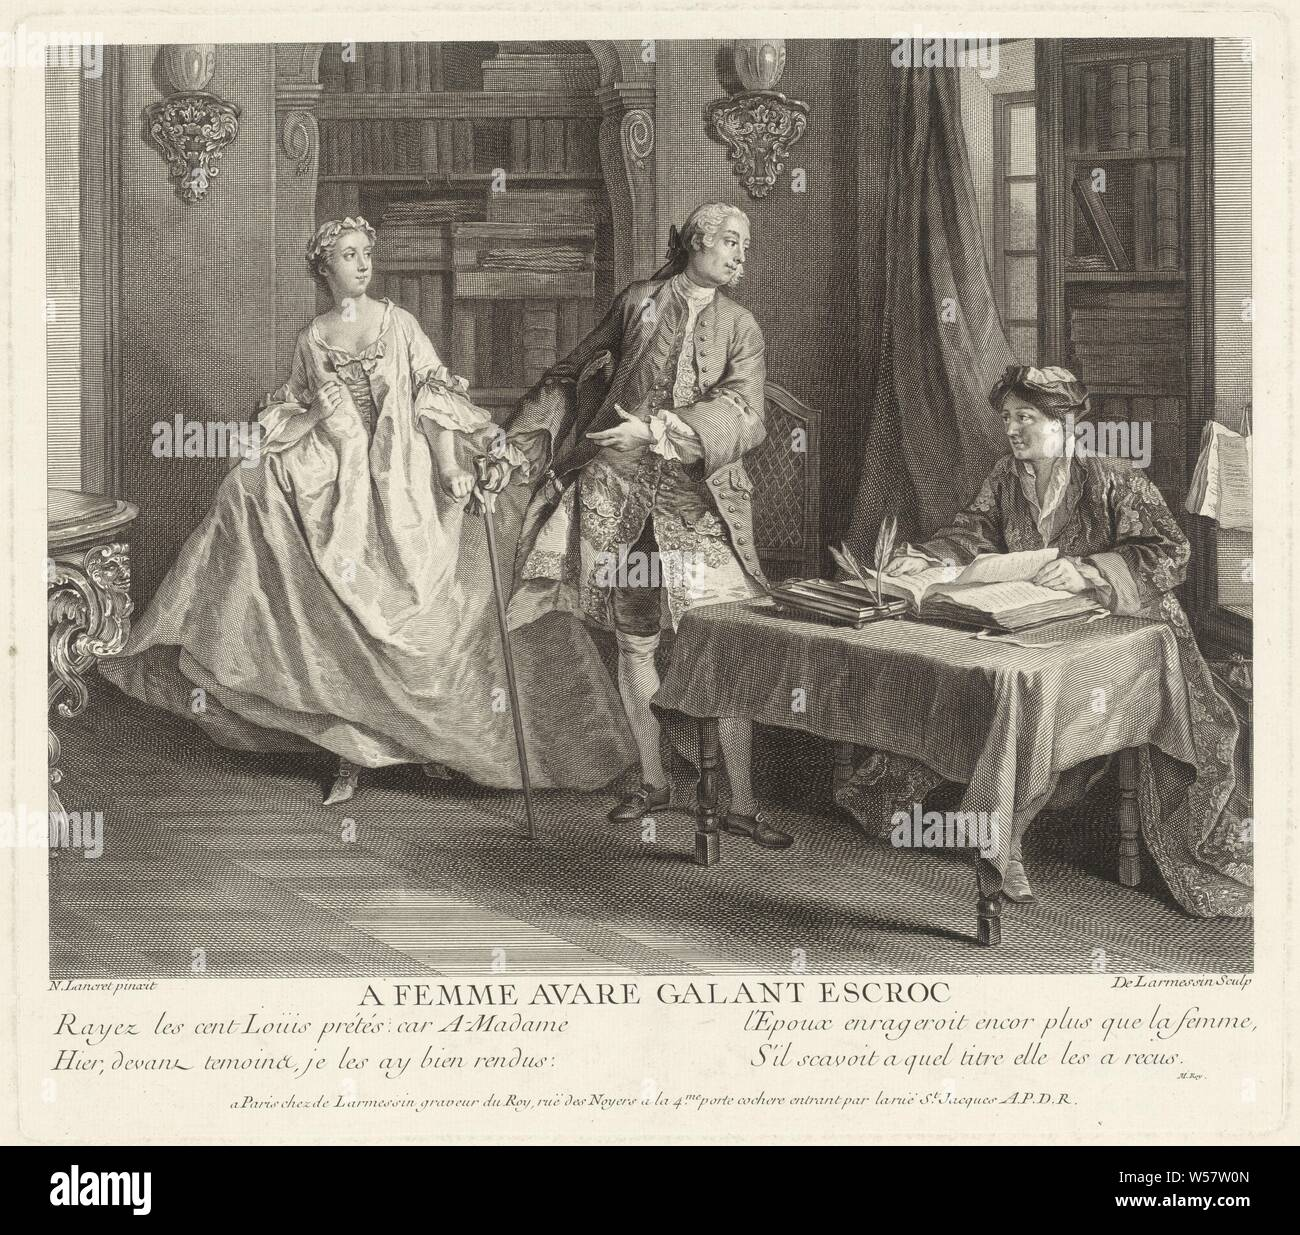 Gulphar Declares Gasparin That He Gave The Money To His Wife A Femme Avare Gallant Escroc Title On Object Stories Of Jean De La Fontaine Series Title Contes De La Fontaine Series